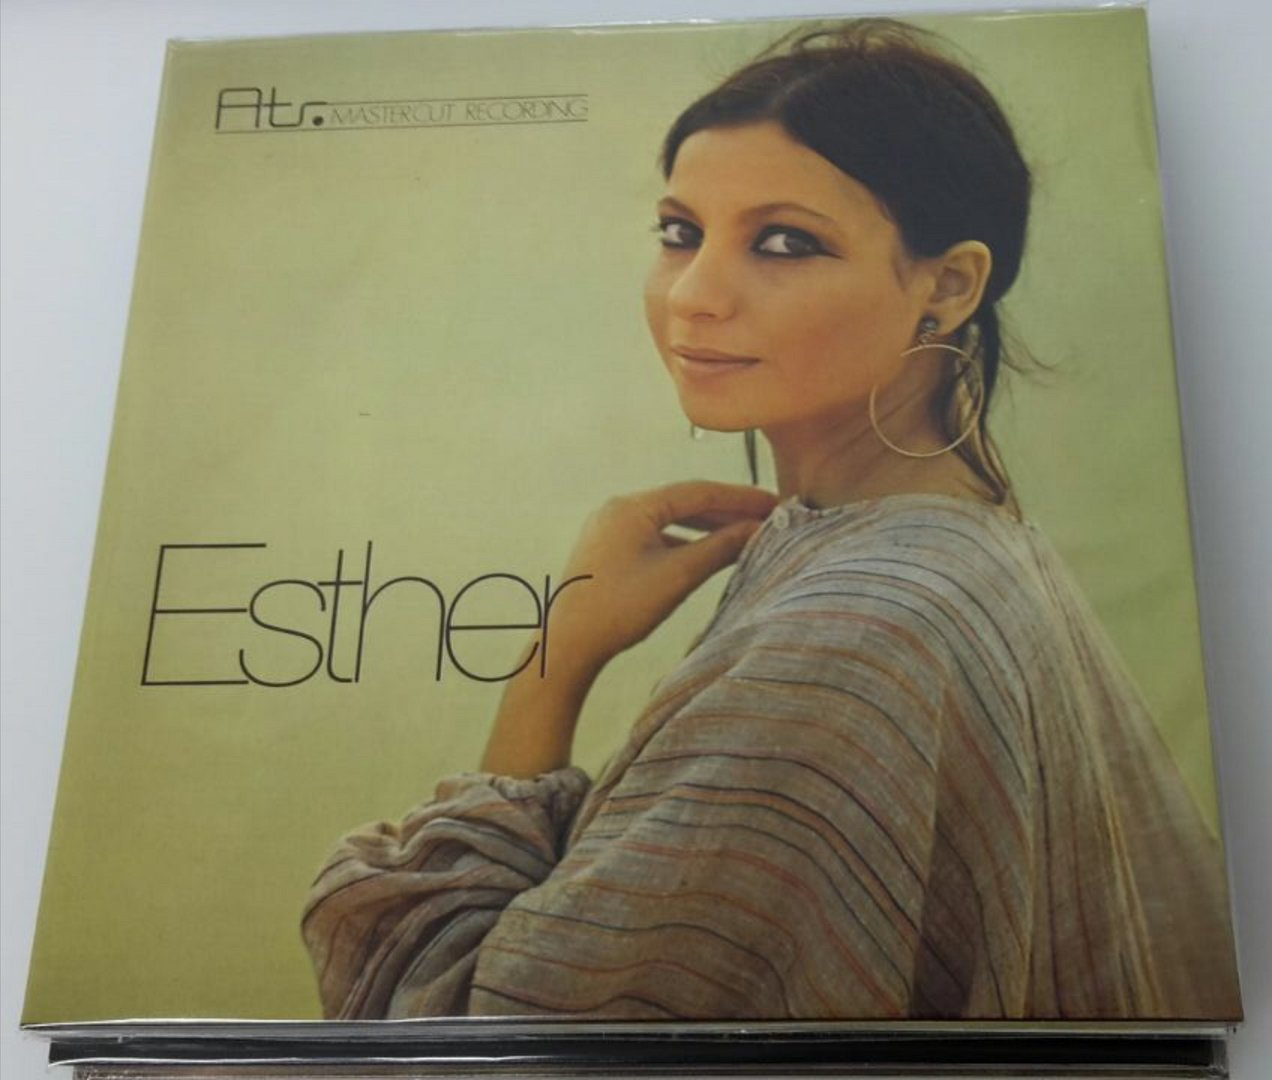 Atr Audio Trade ESTHER OFARIM - Esther LP 180g | Mastercut Recording (ATR 001)